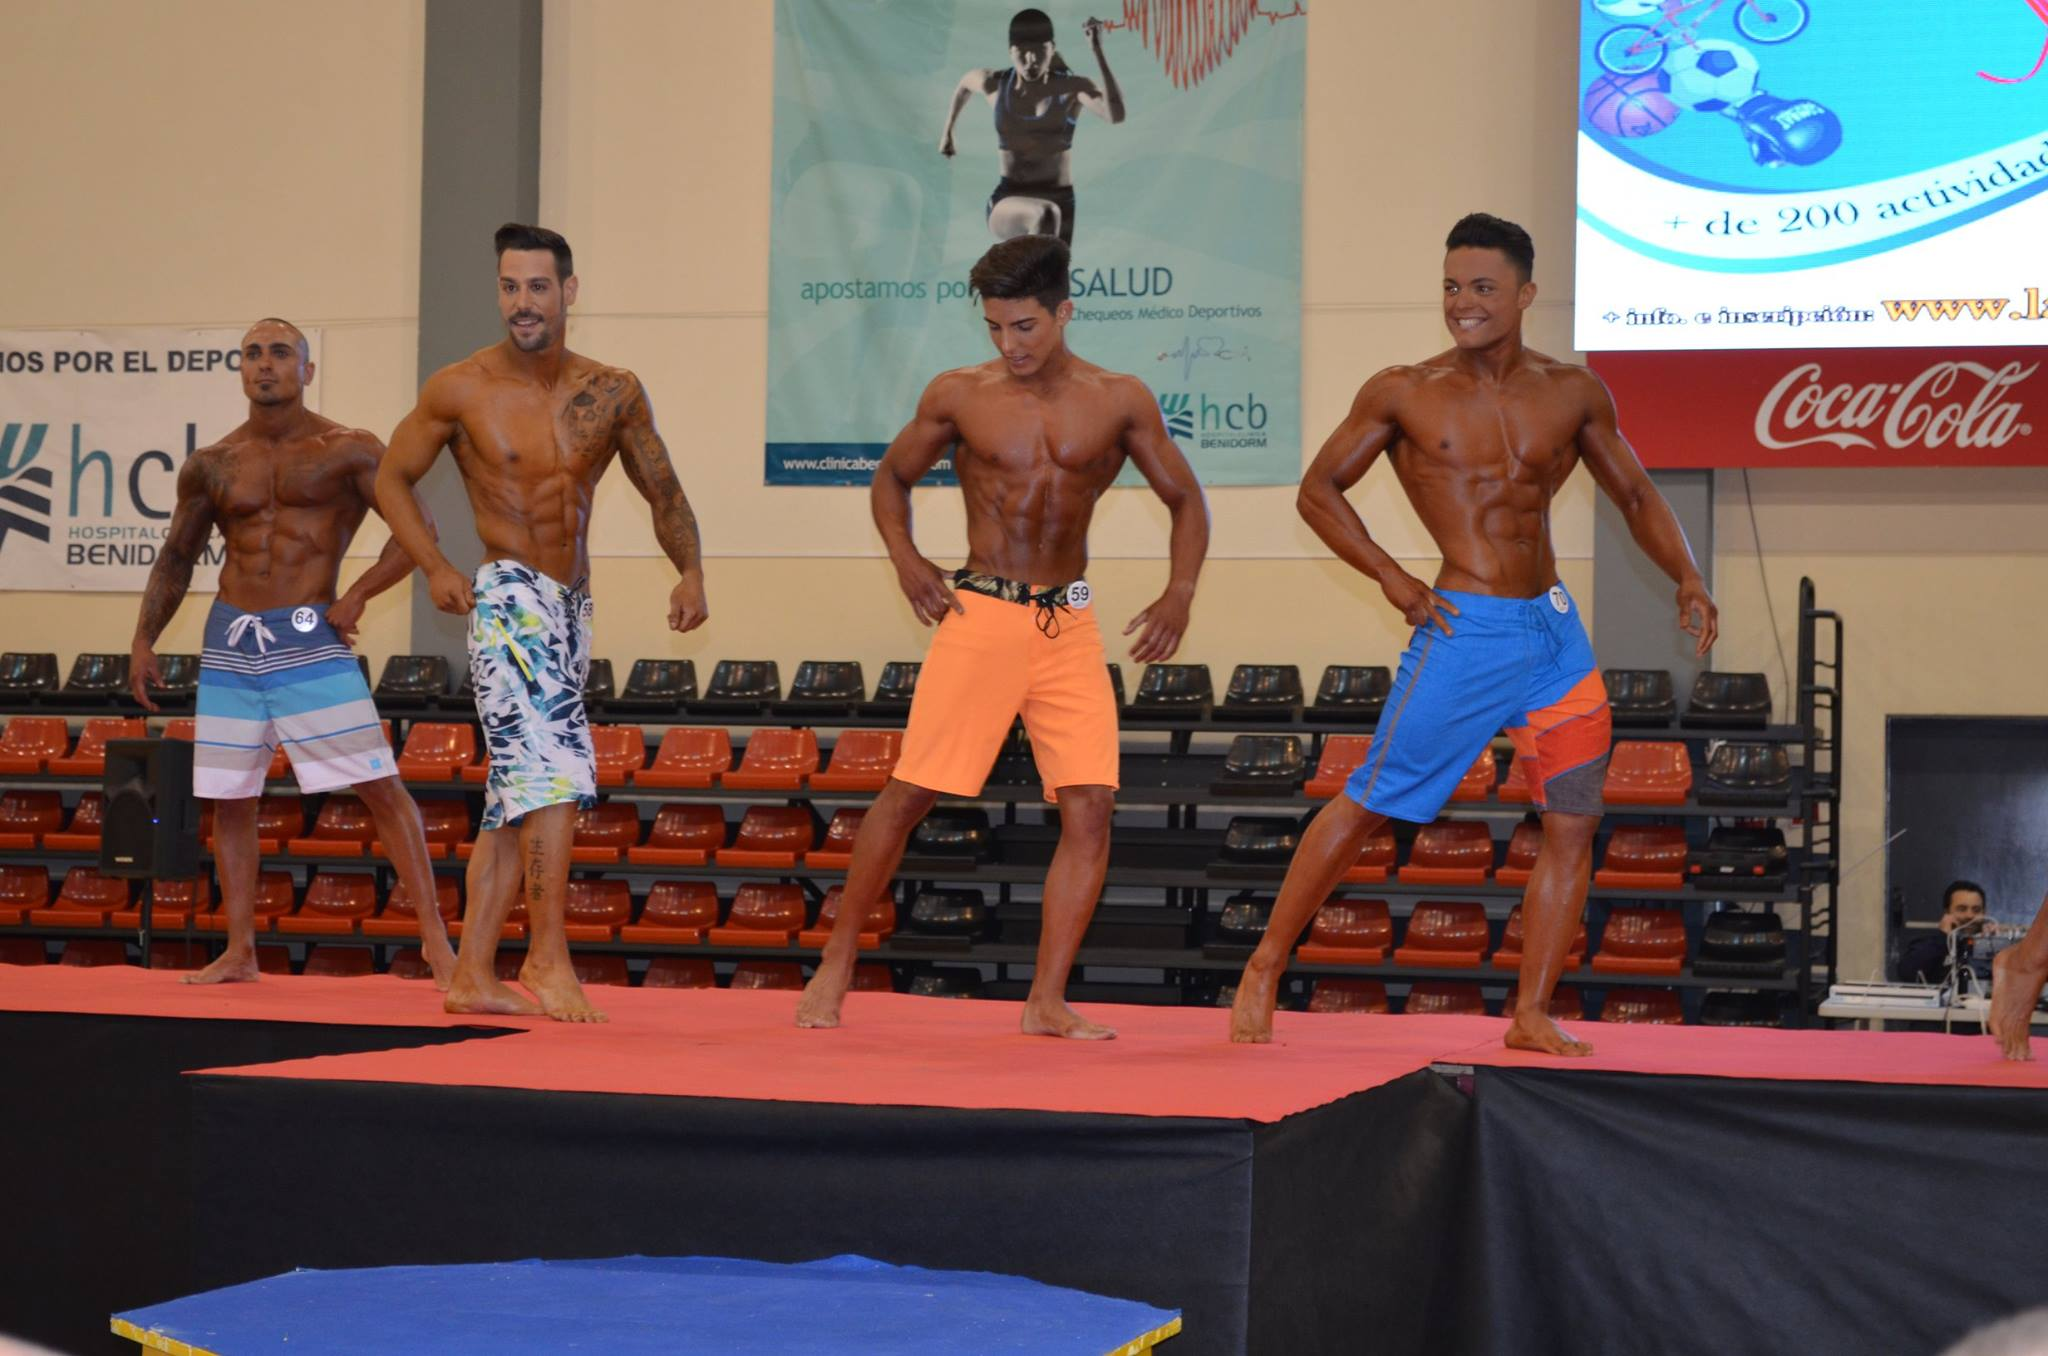 http://www.ifbbspain.com/images/stories/resultados/lanucia_15.jpg